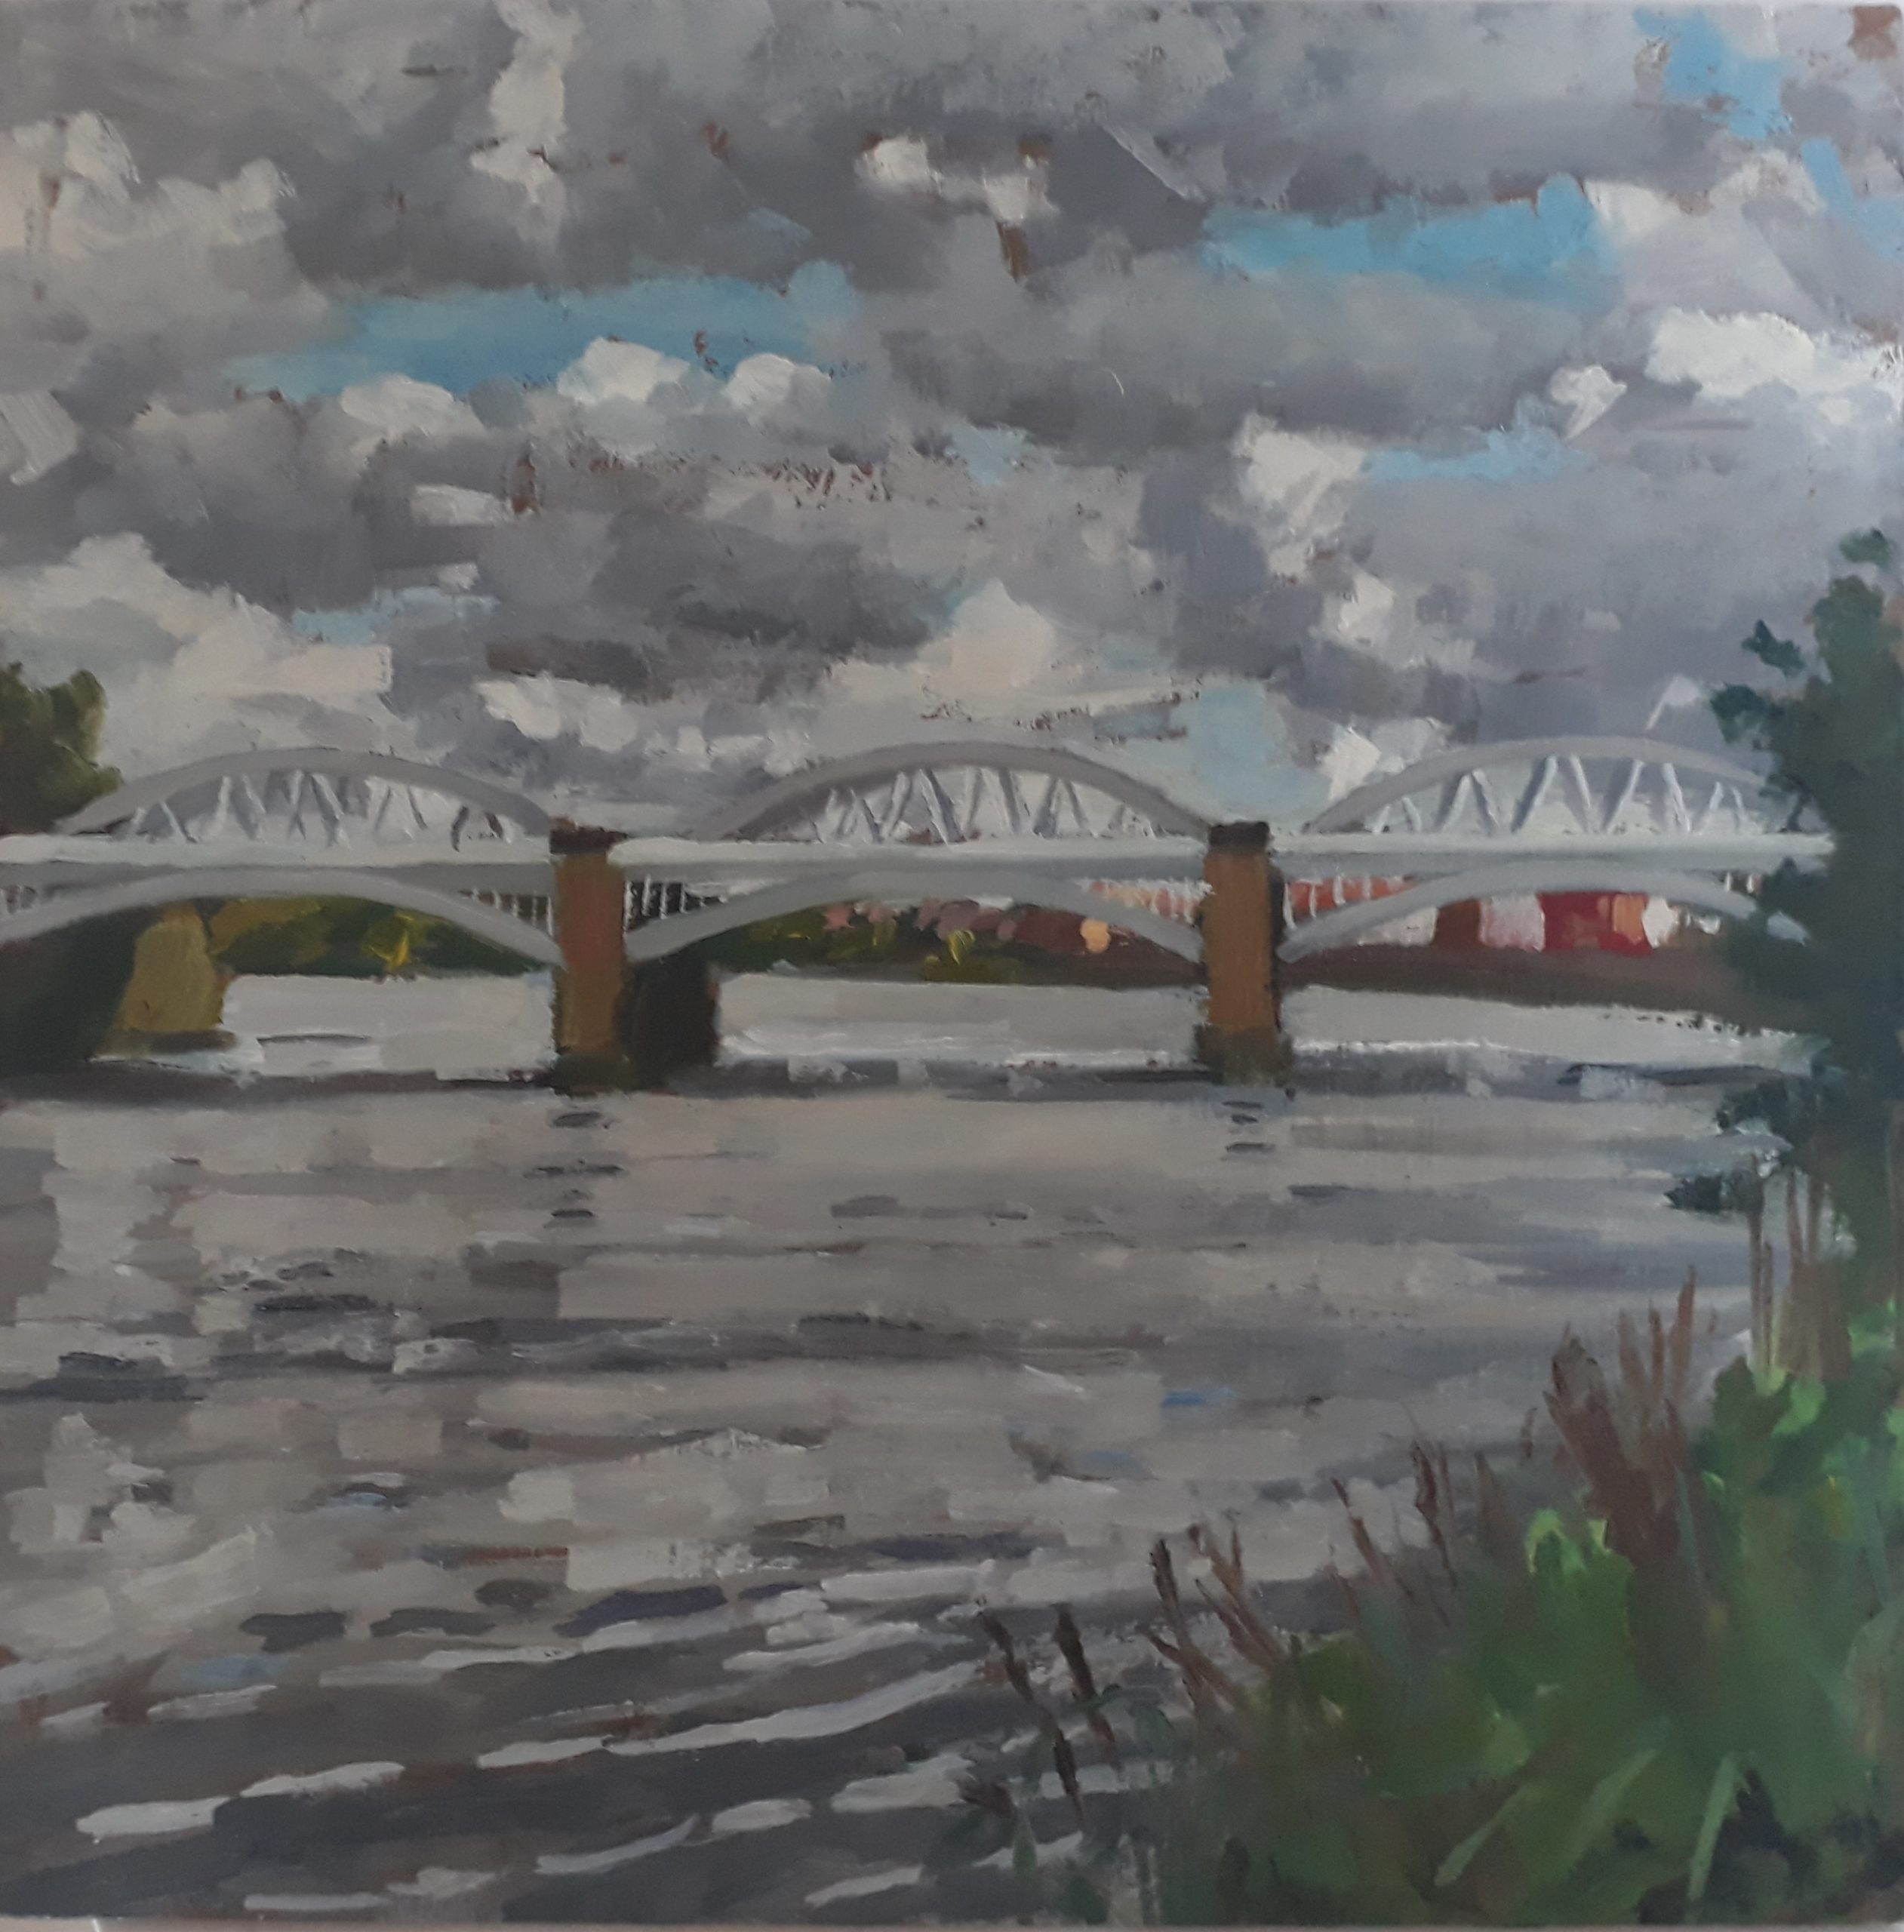 Storm Clouds over Barnes Bridge